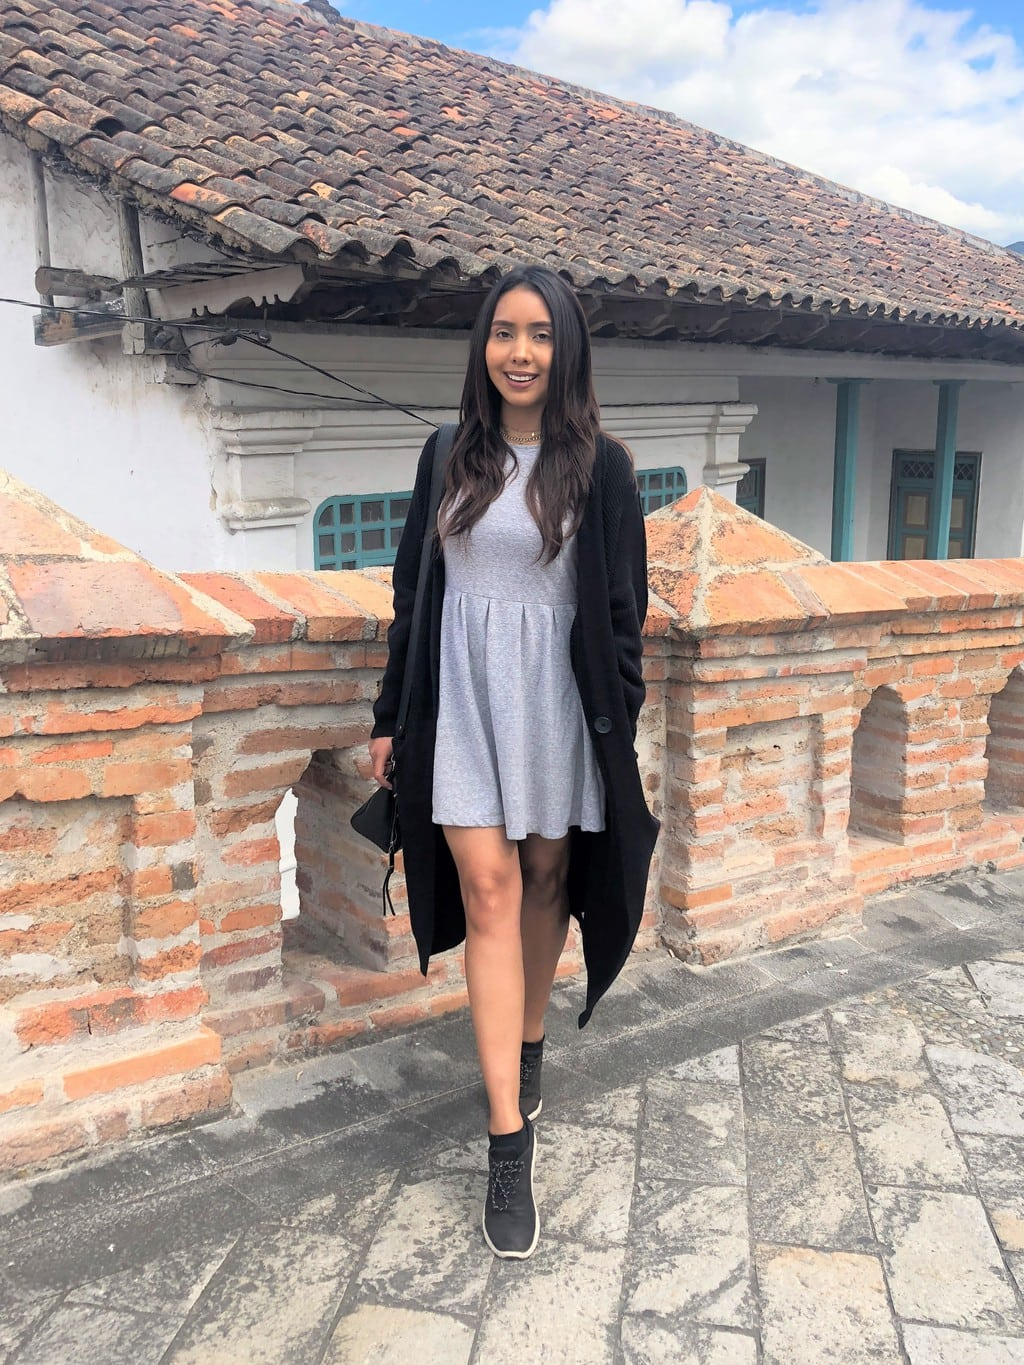 Cynthia wears a grey knit dress with a long, black cardigan, with black sneakers.